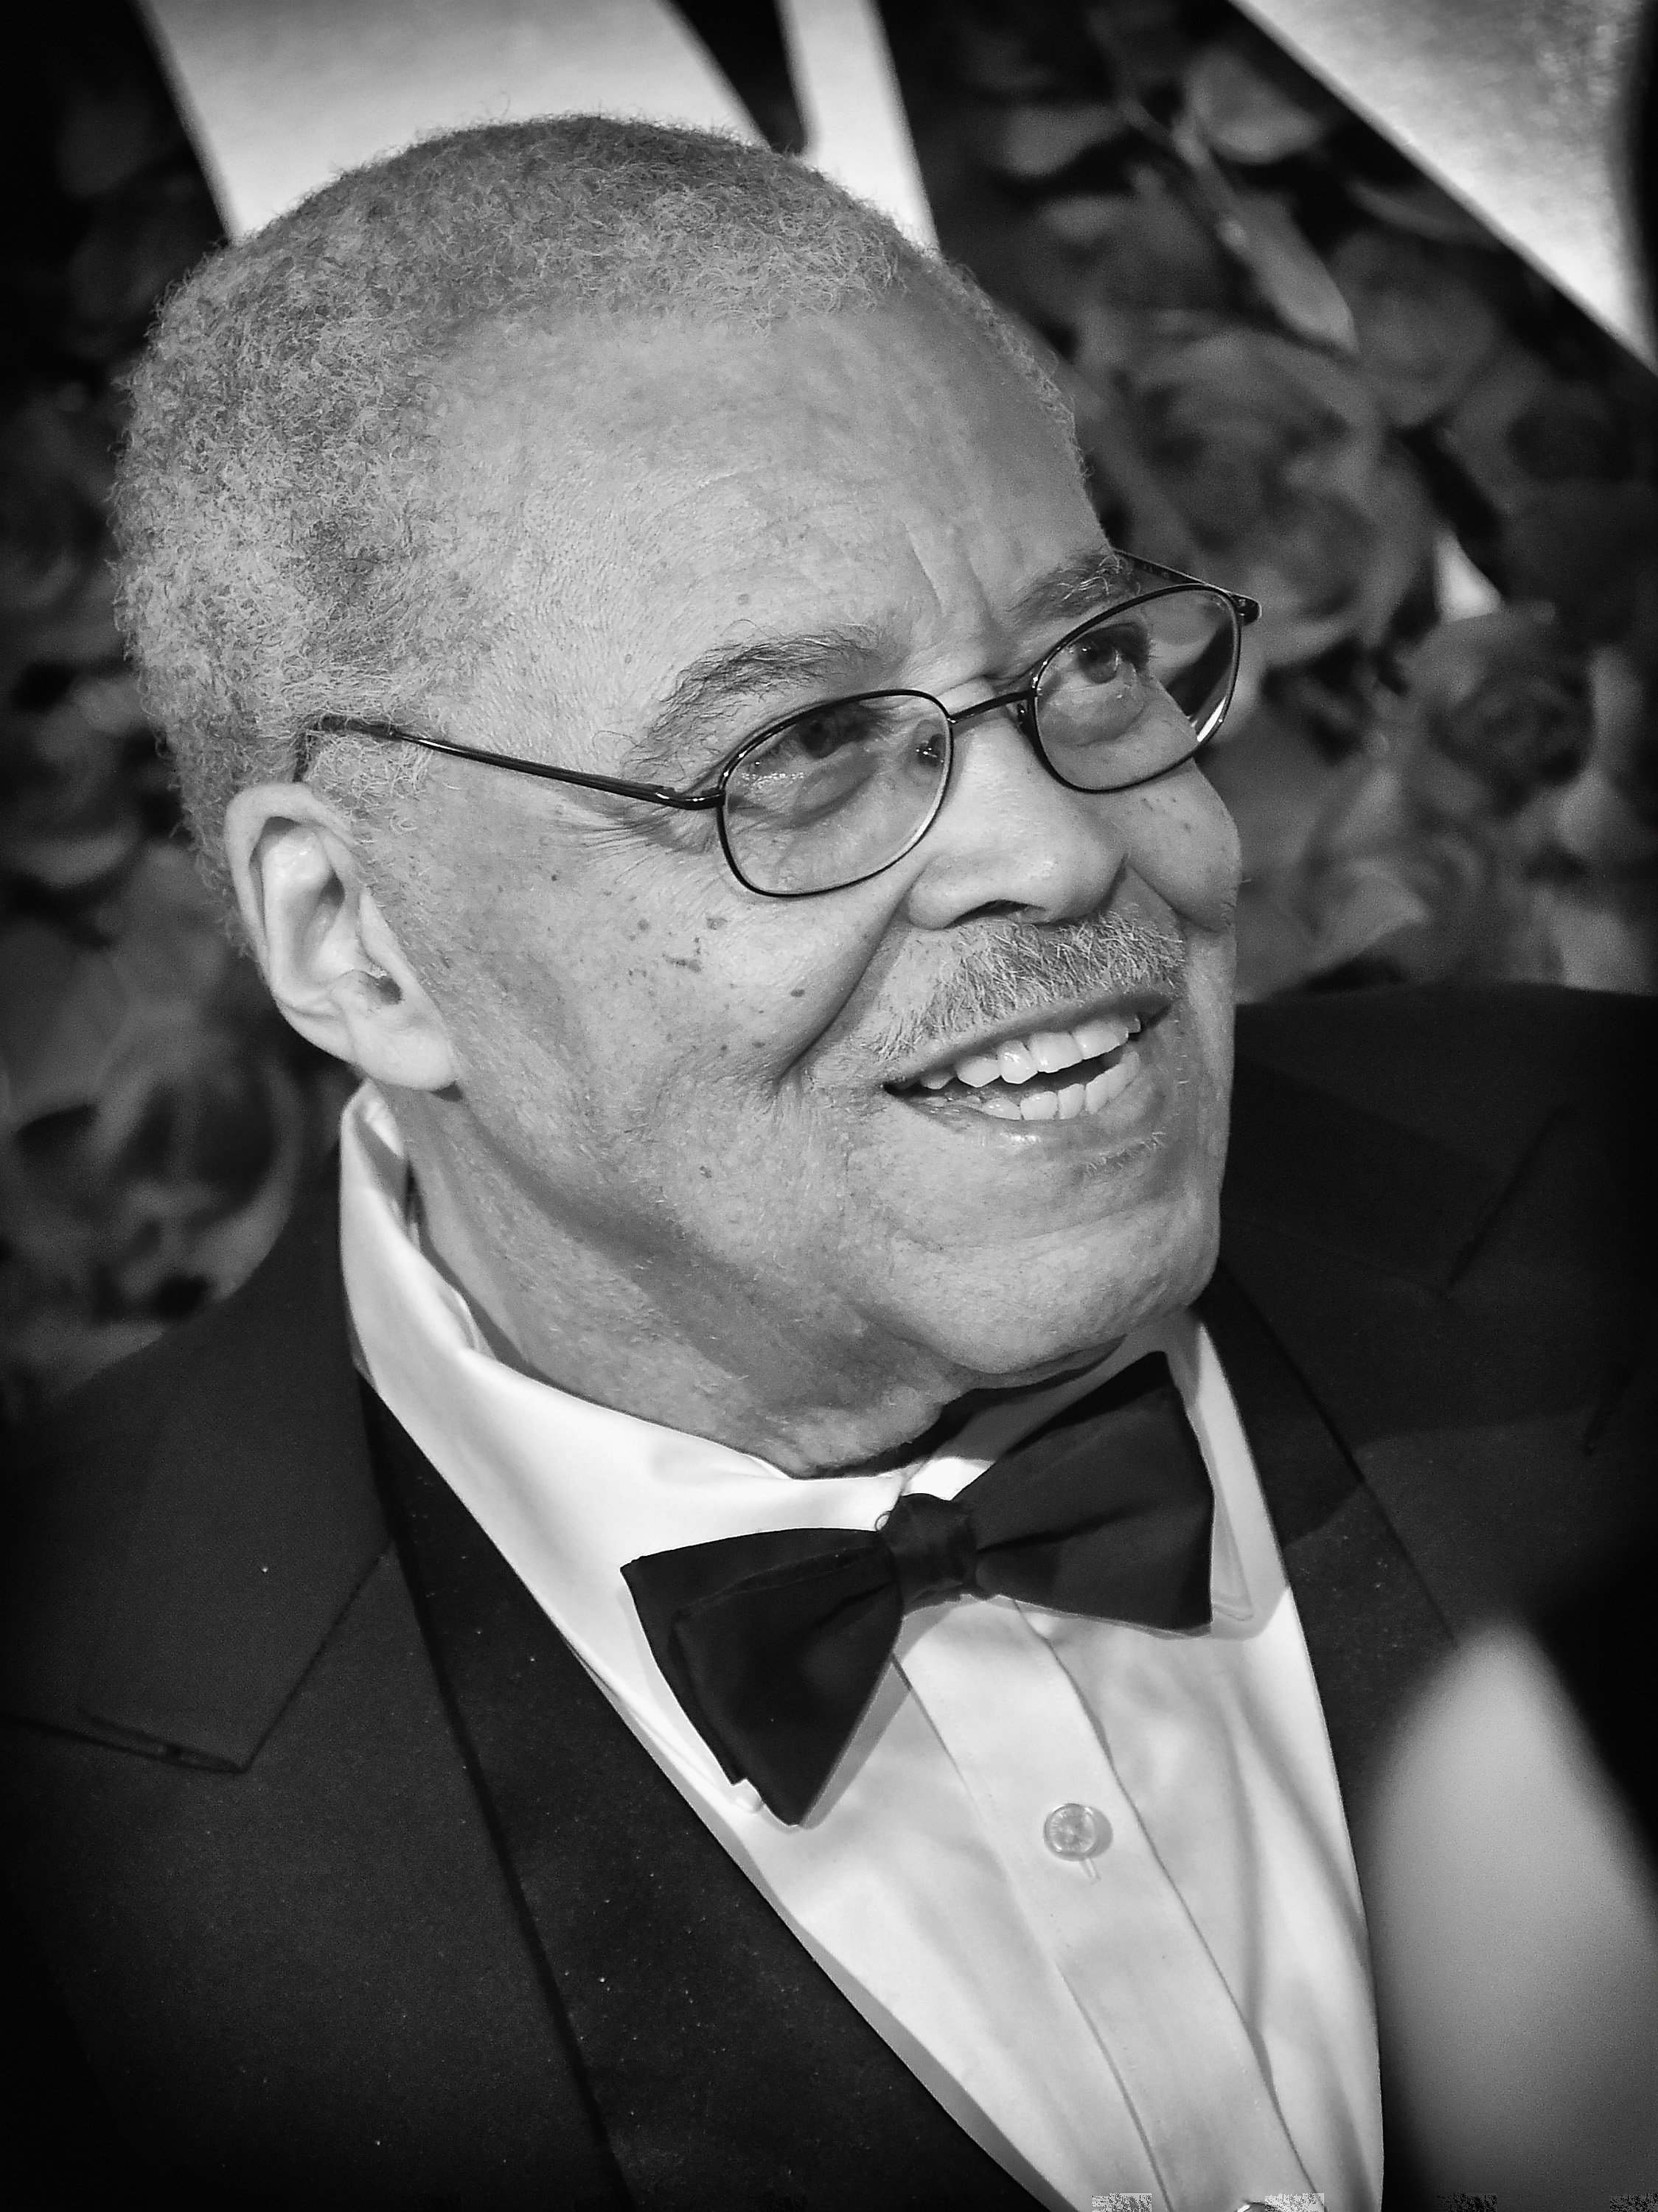 James Earl Jones at the 2016 Tony Awards in New York City on June 12, 2016. | Photo: Getty Images